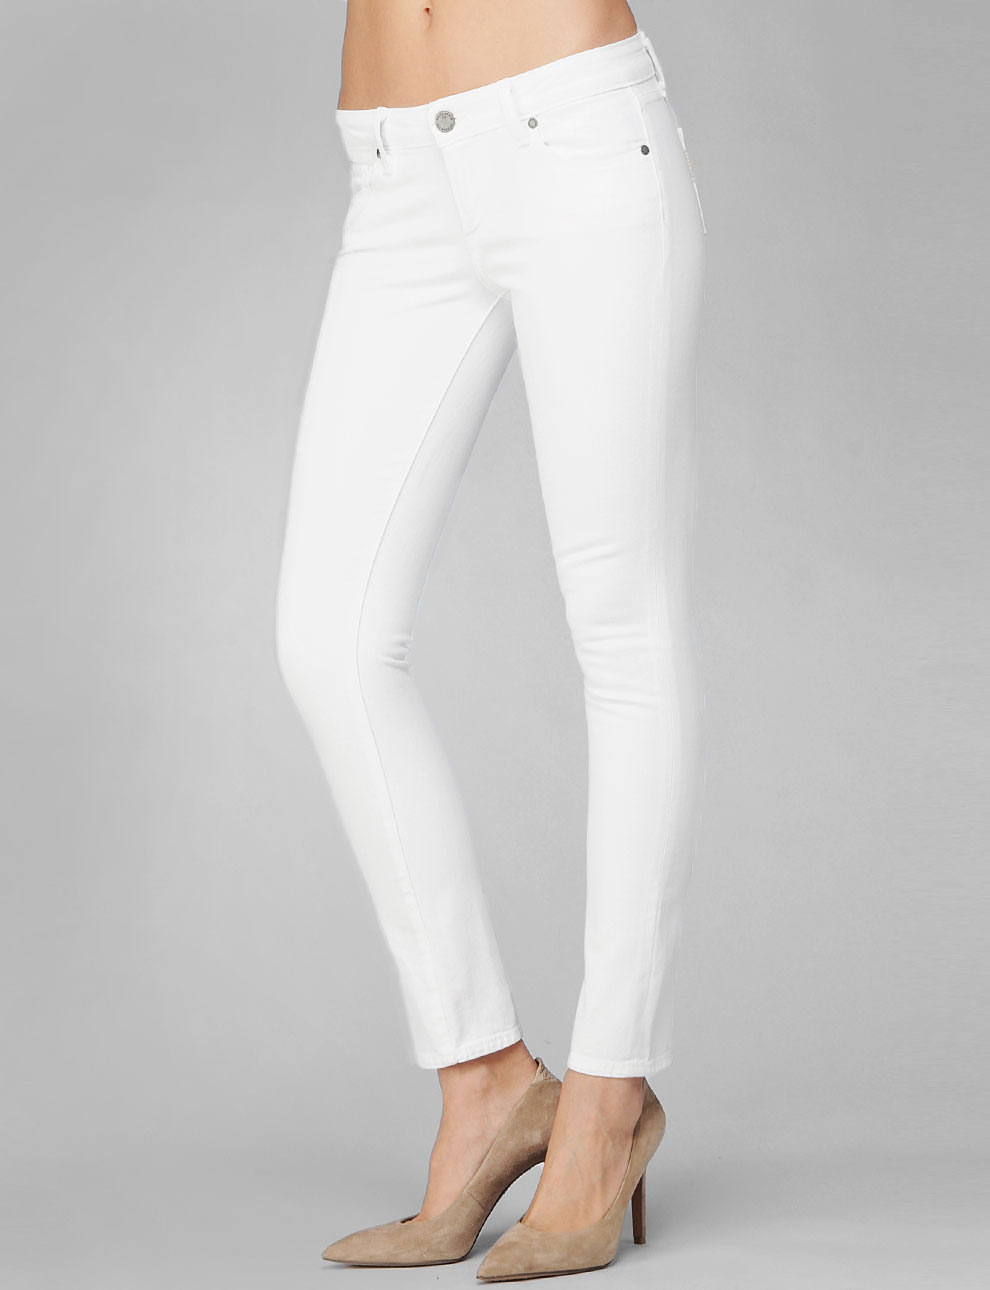 Paige Skyline Ankle Peg Optic White in White | Lyst